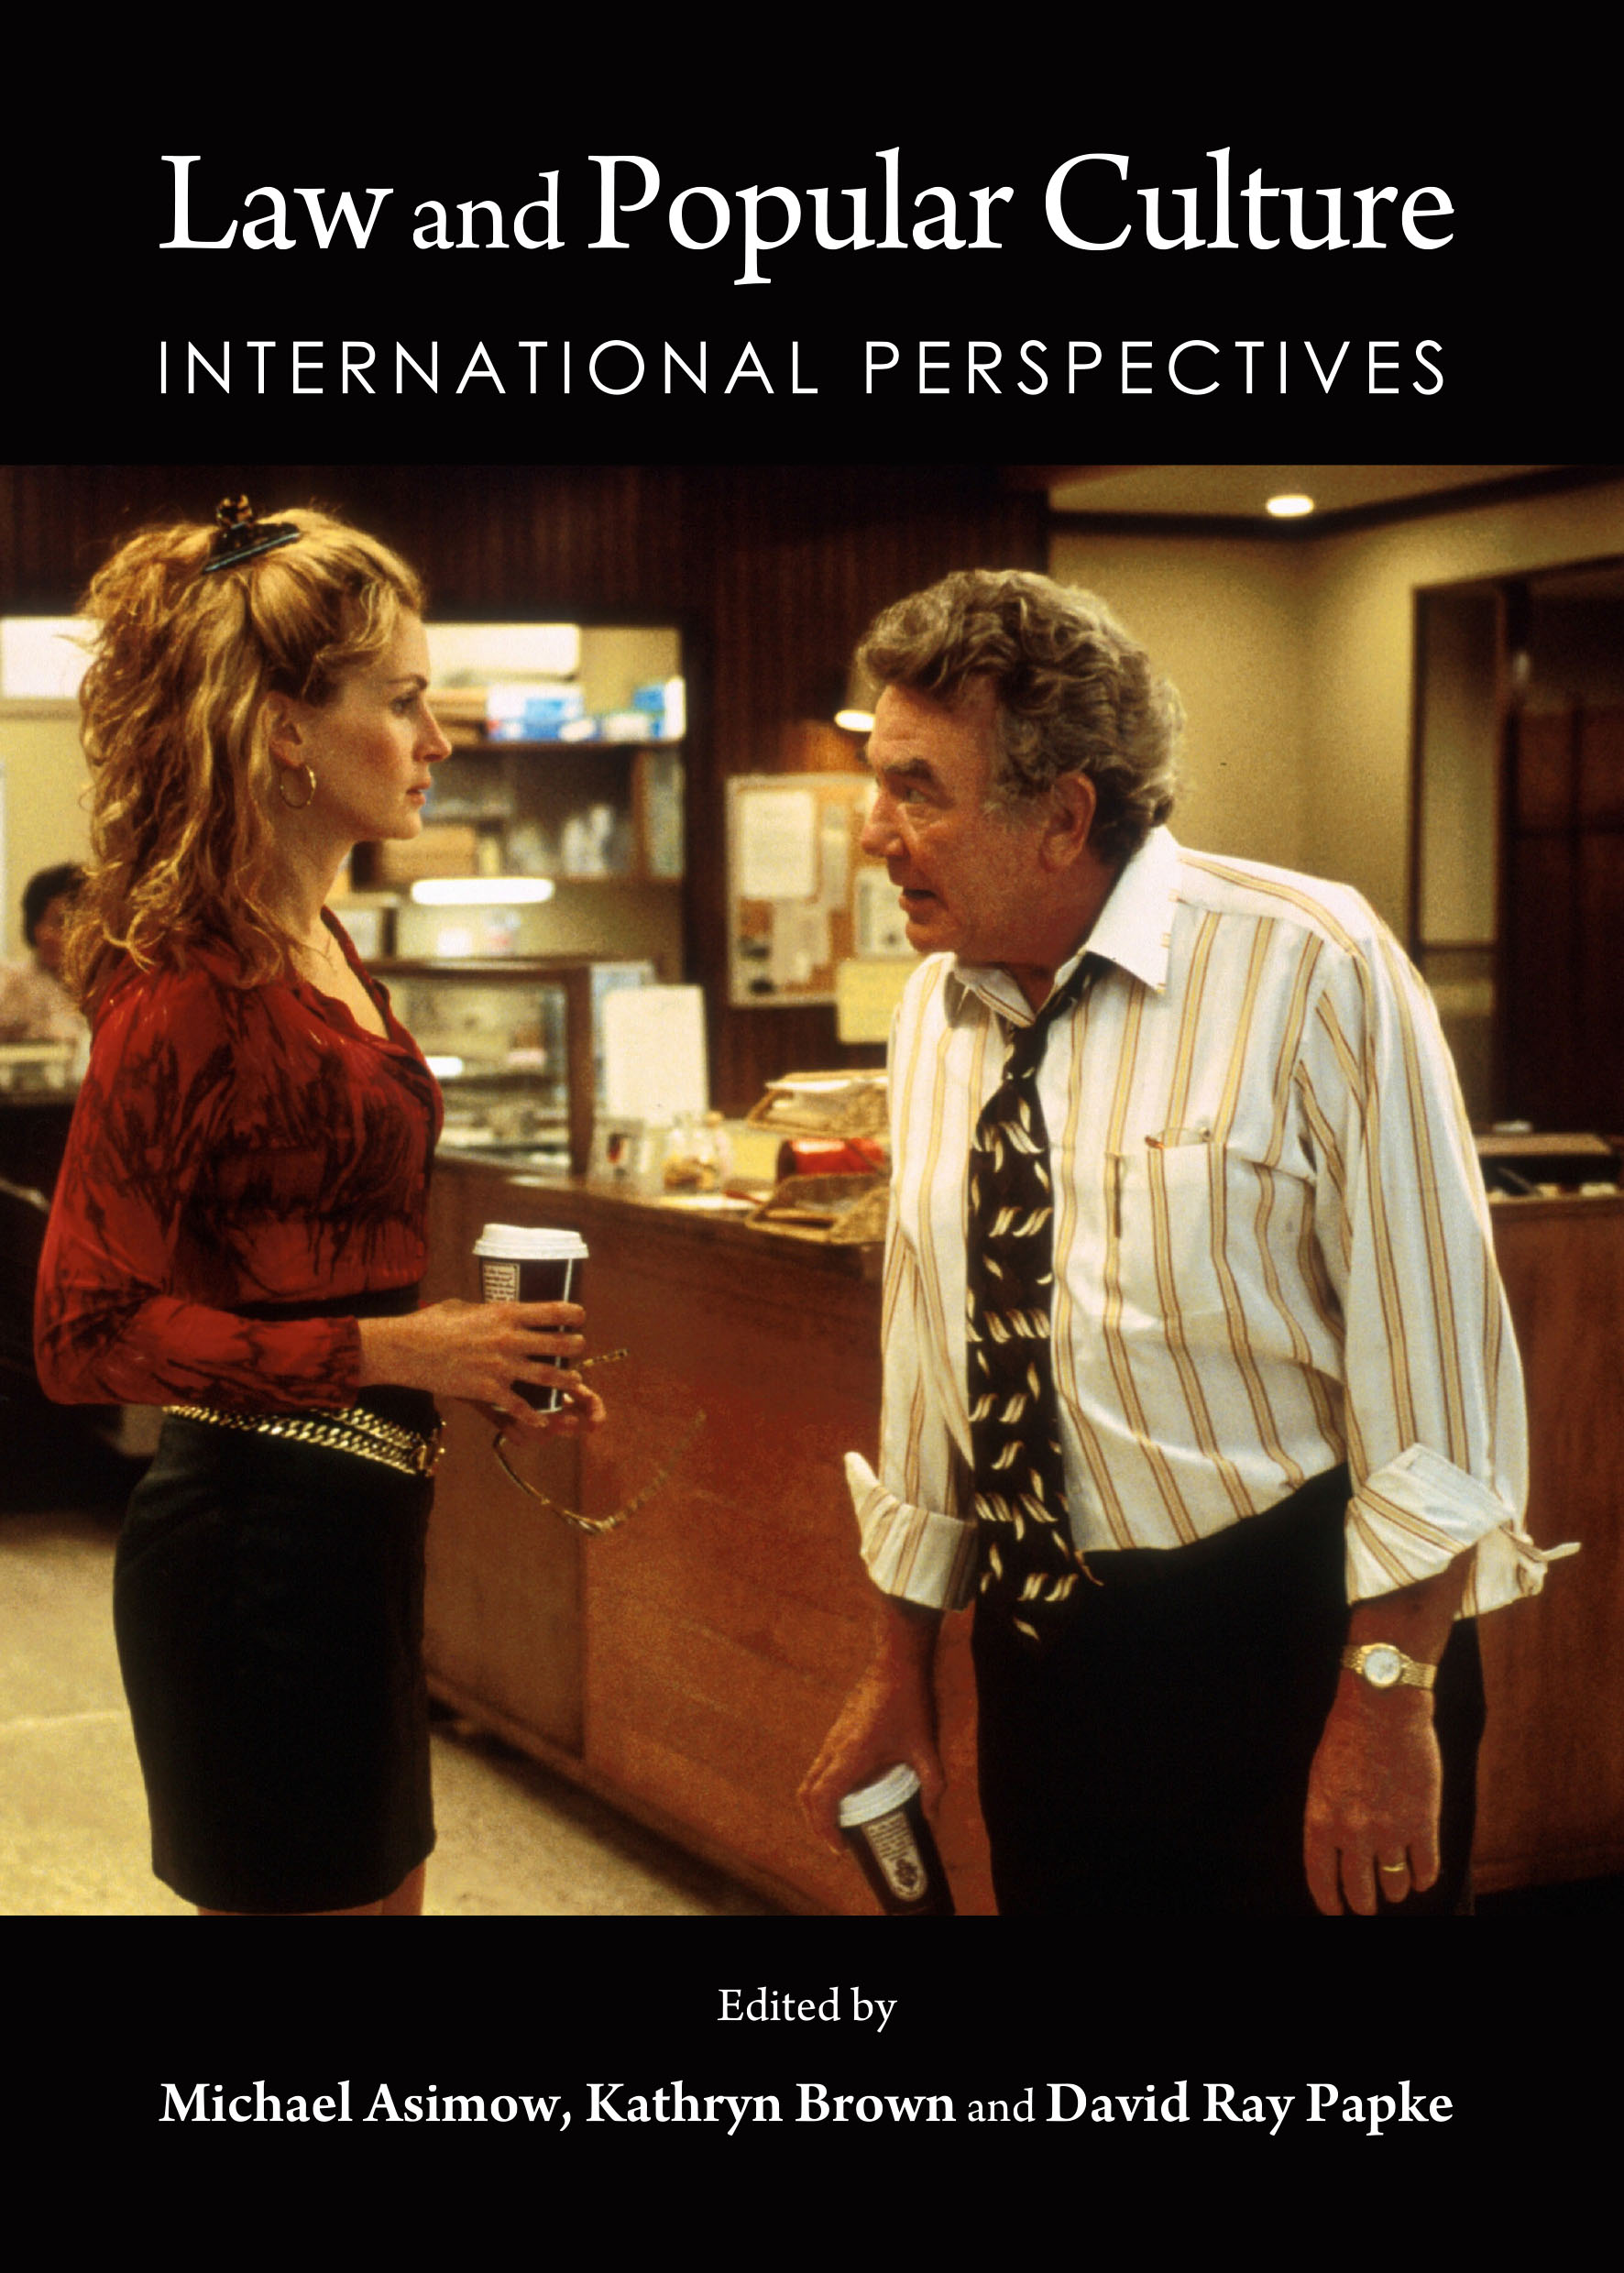 Law and Popular Culture: International Perspectives